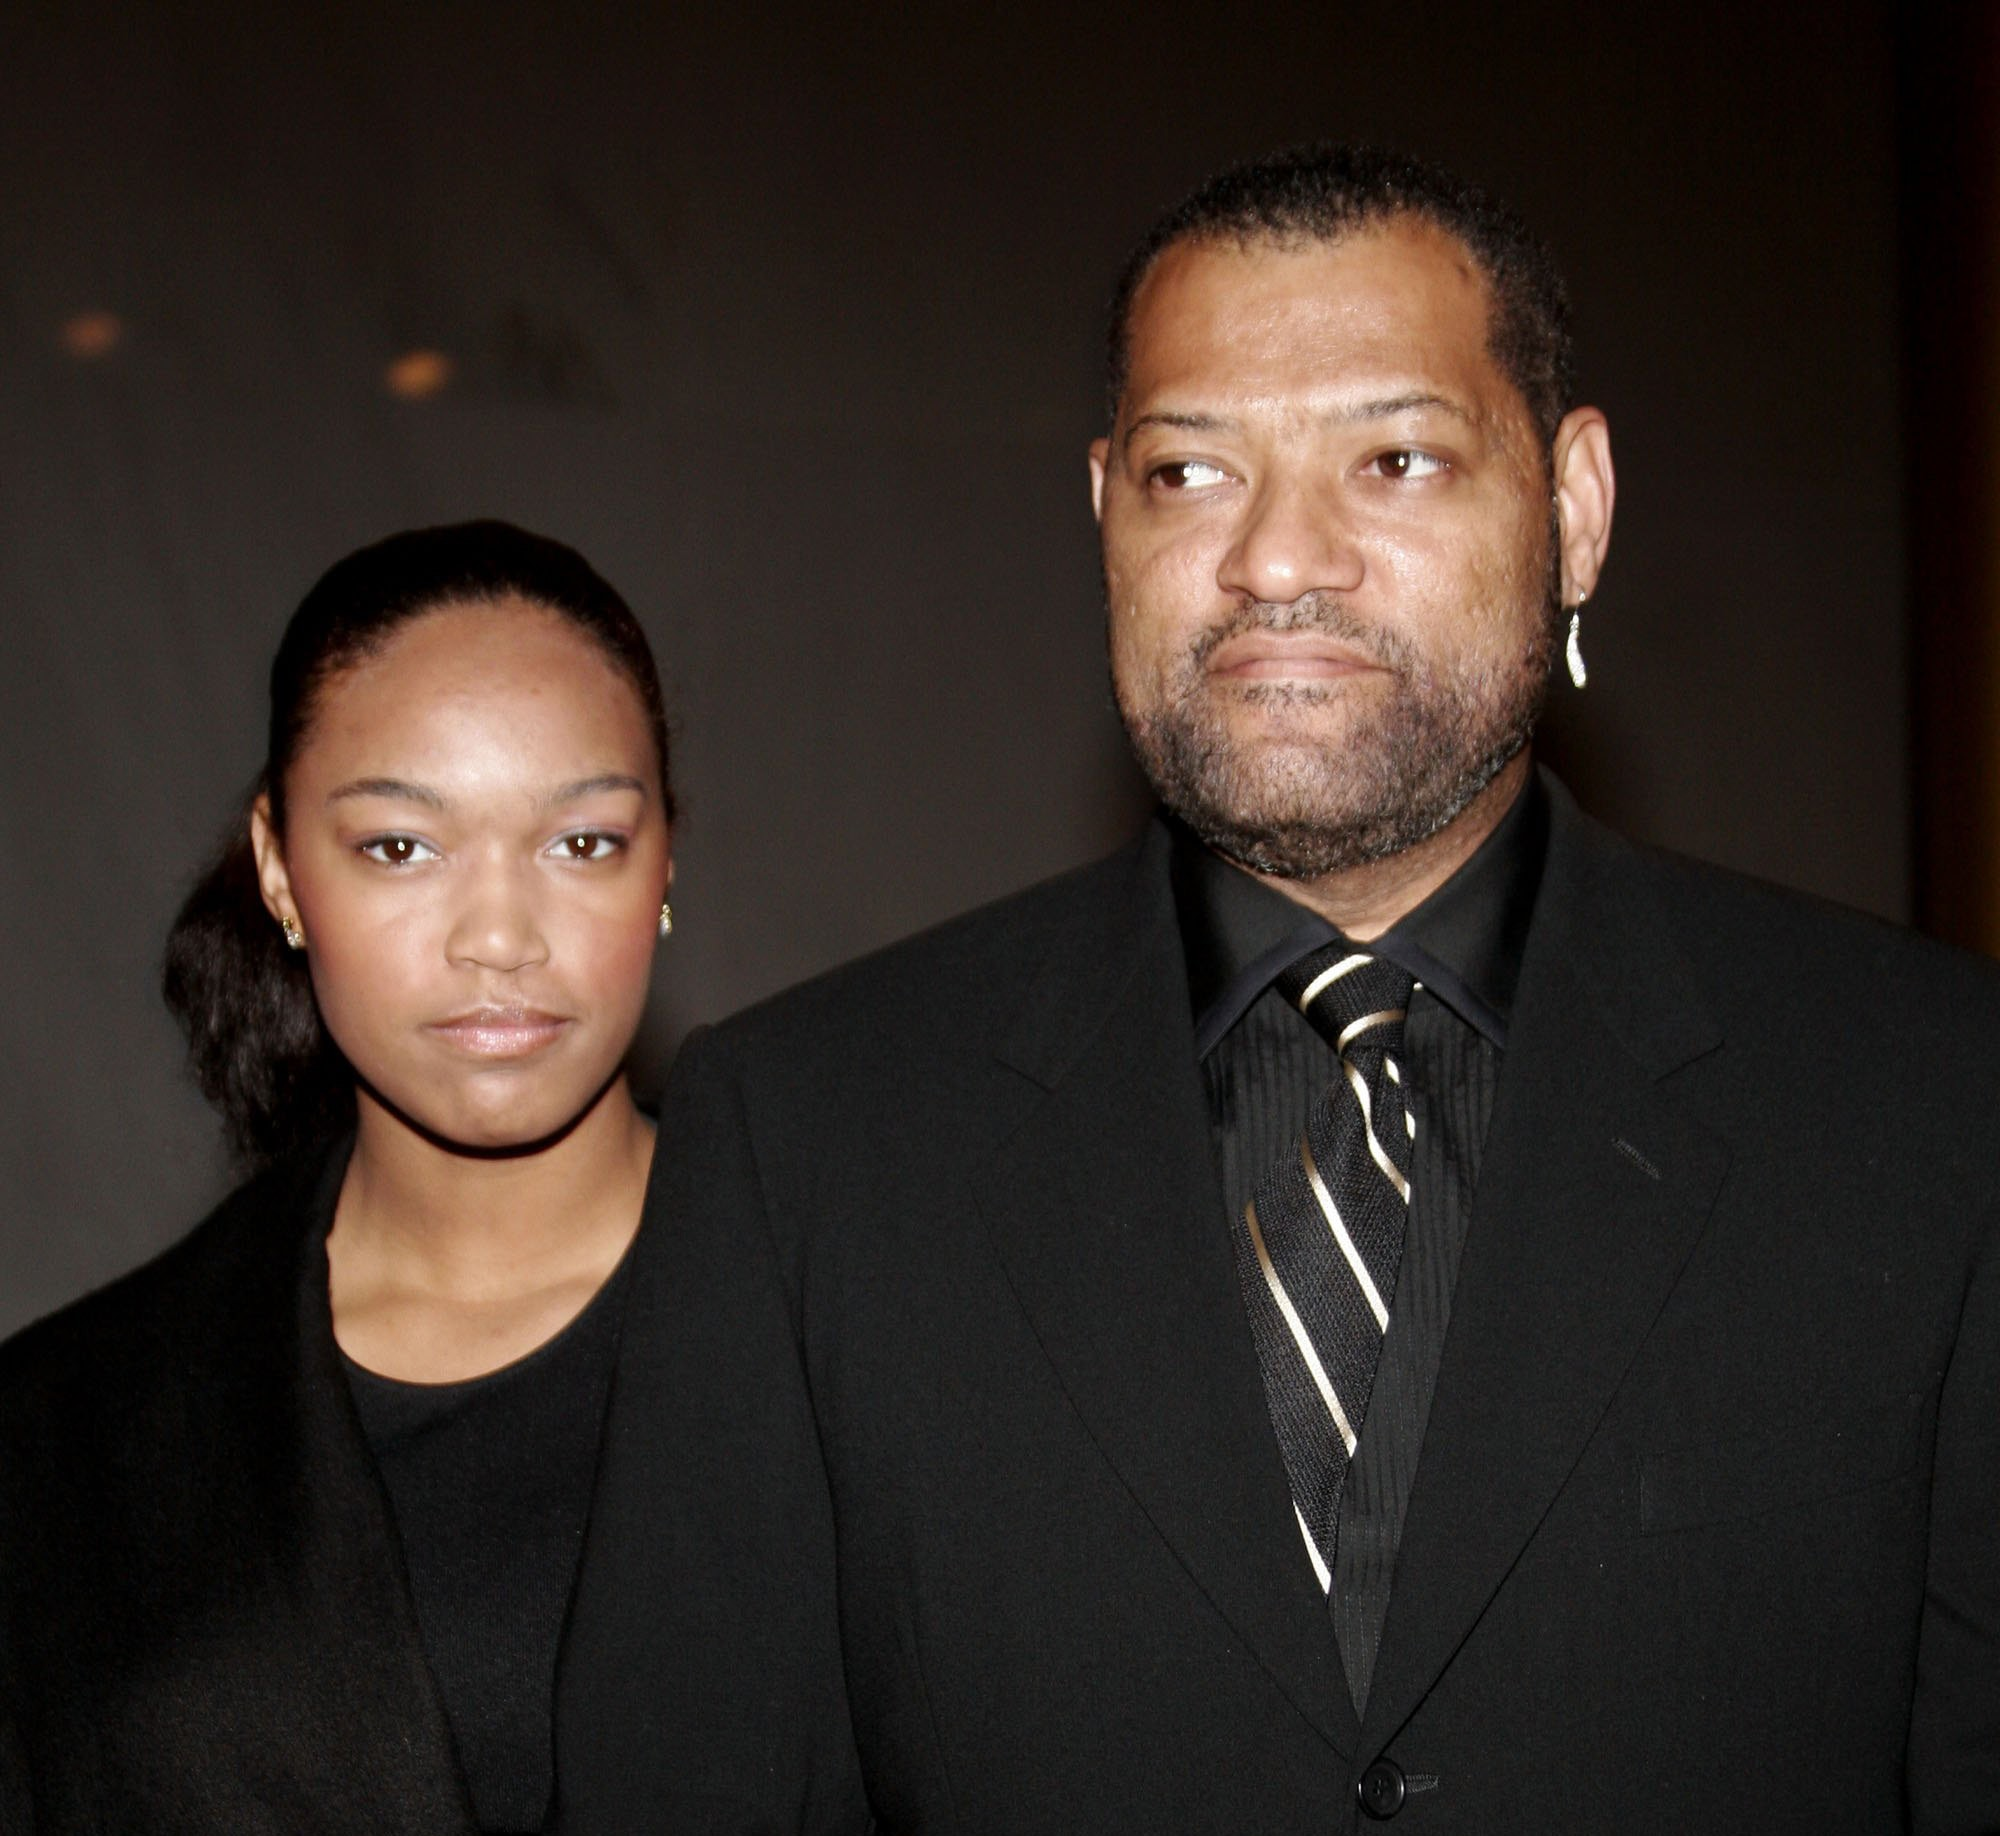 Montana Fishburne e Laurence Fishburne em 2006 (Foto: Getty Images)